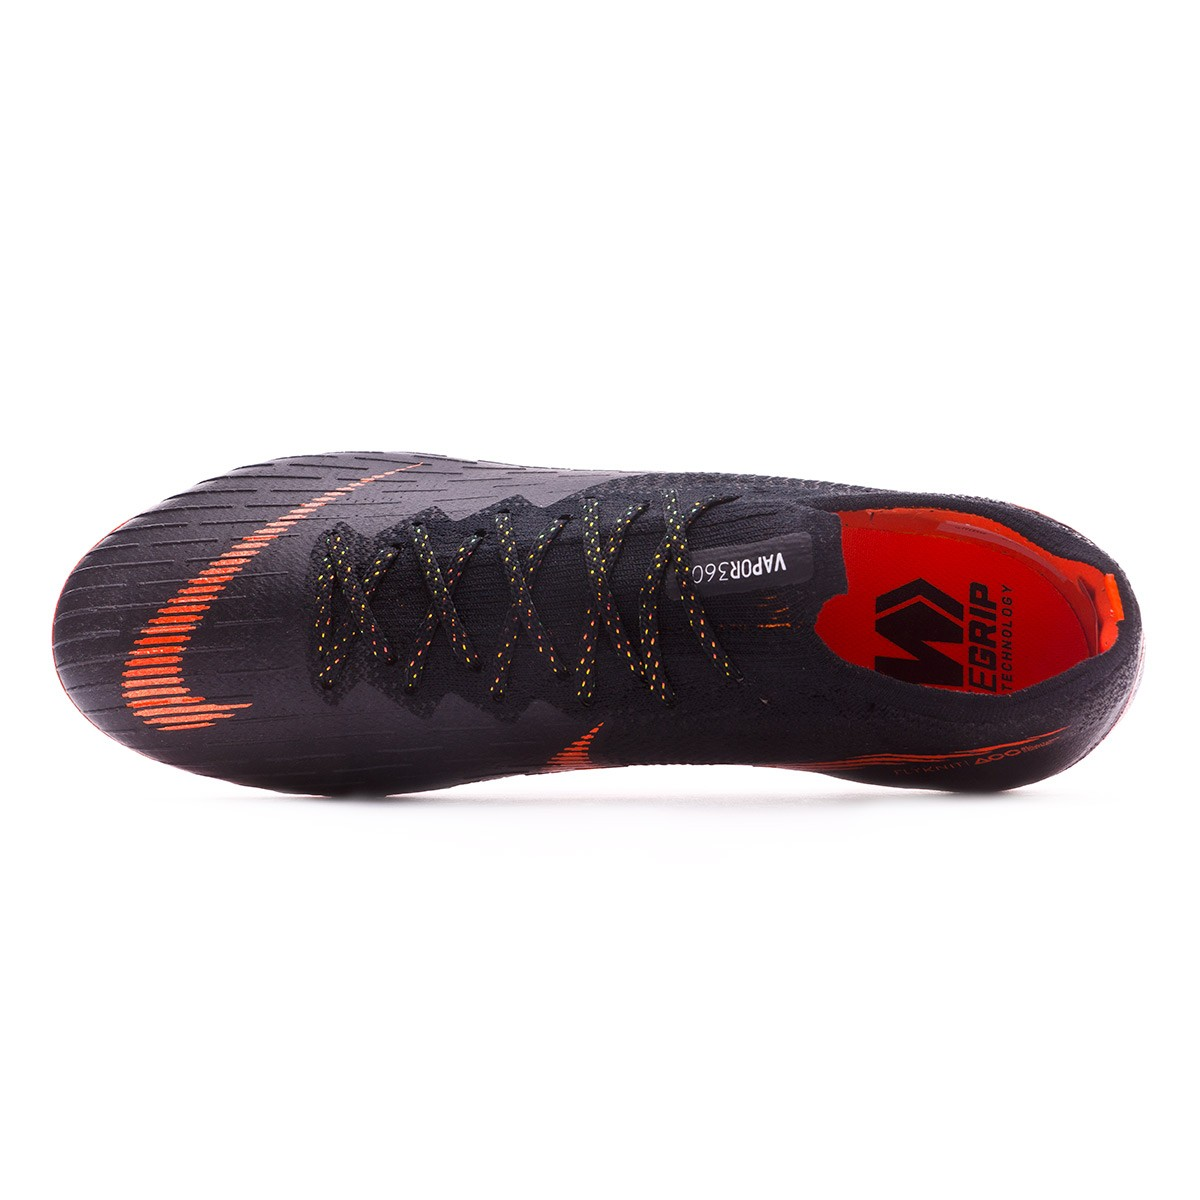 595aa2730ef Football Boots Nike Mercurial Vapor XII Elite AG-Pro Black-Total orange- White - Tienda de fútbol Fútbol Emotion